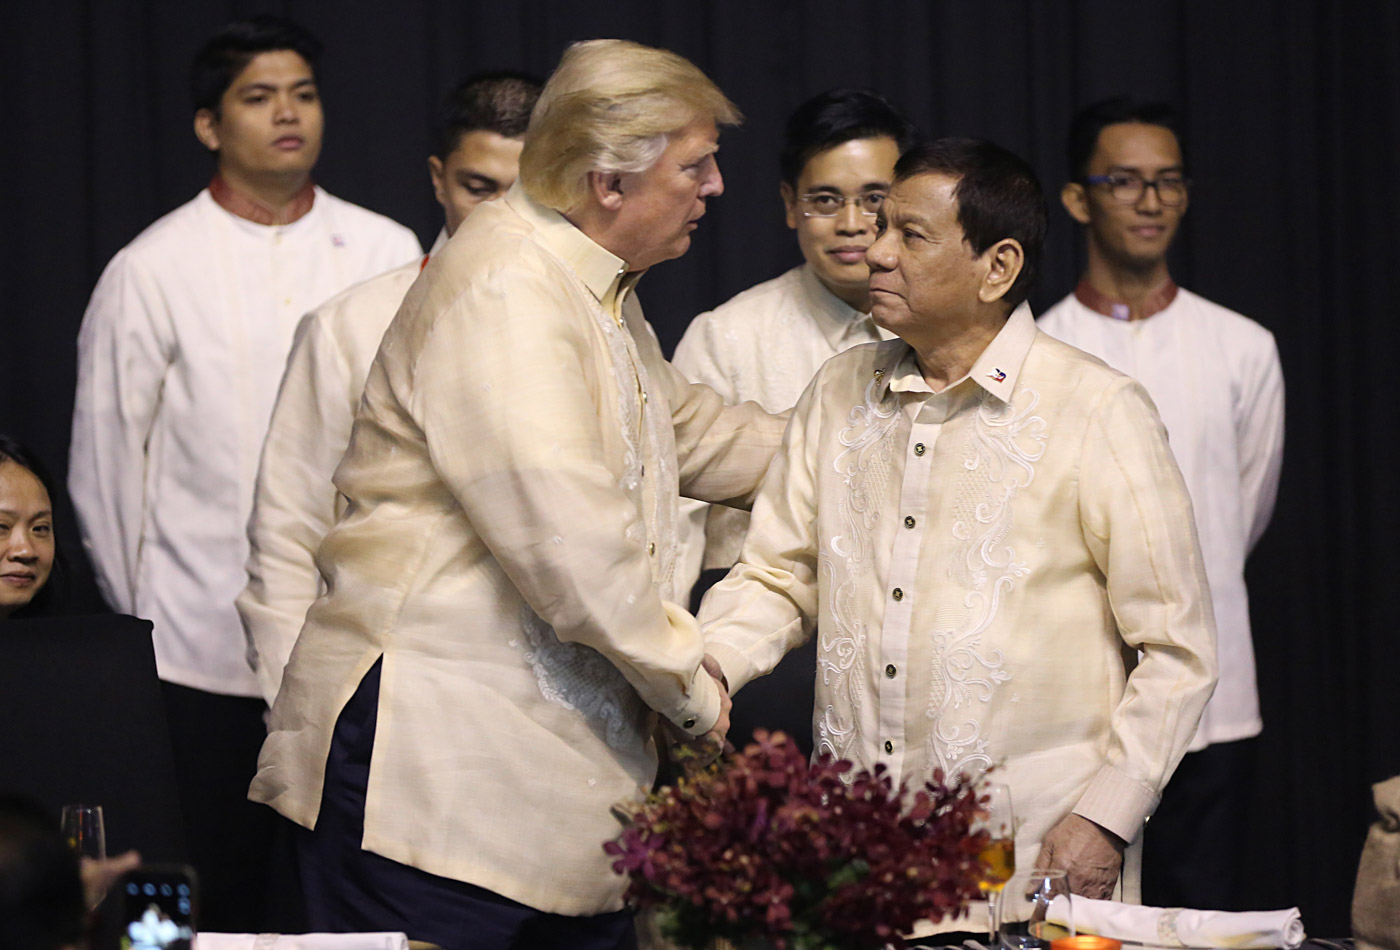 Human rights advocates: Trump's silence on Duterte's drug war 'dismaying'